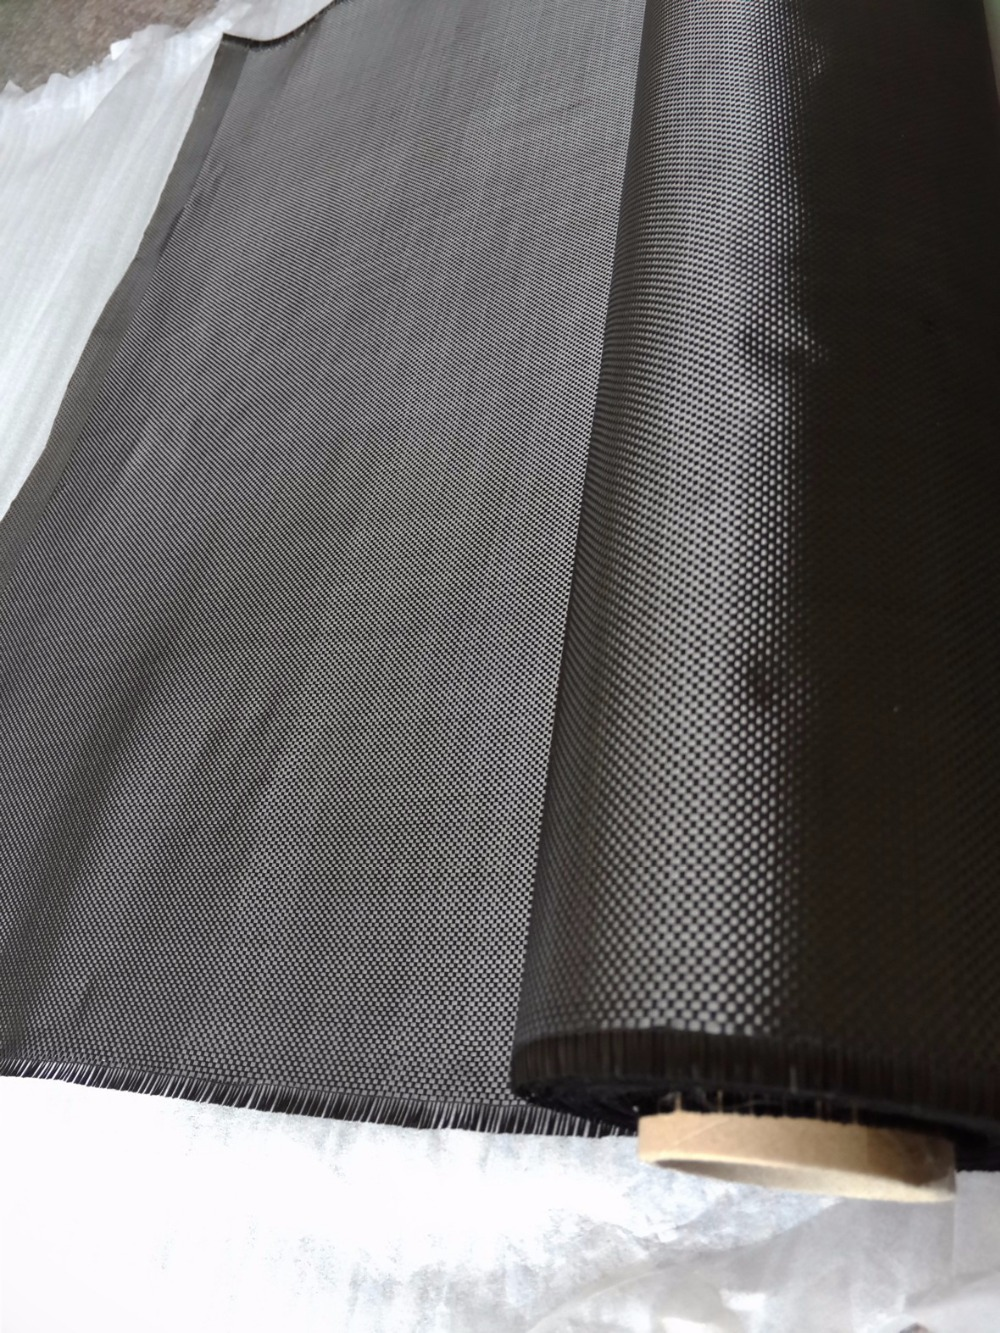 3K 100% Real carbon fiber fabric plain 200g/m2 carbon cloth 1mX1m, high quality for car parts and airplane models(China (Mainland))